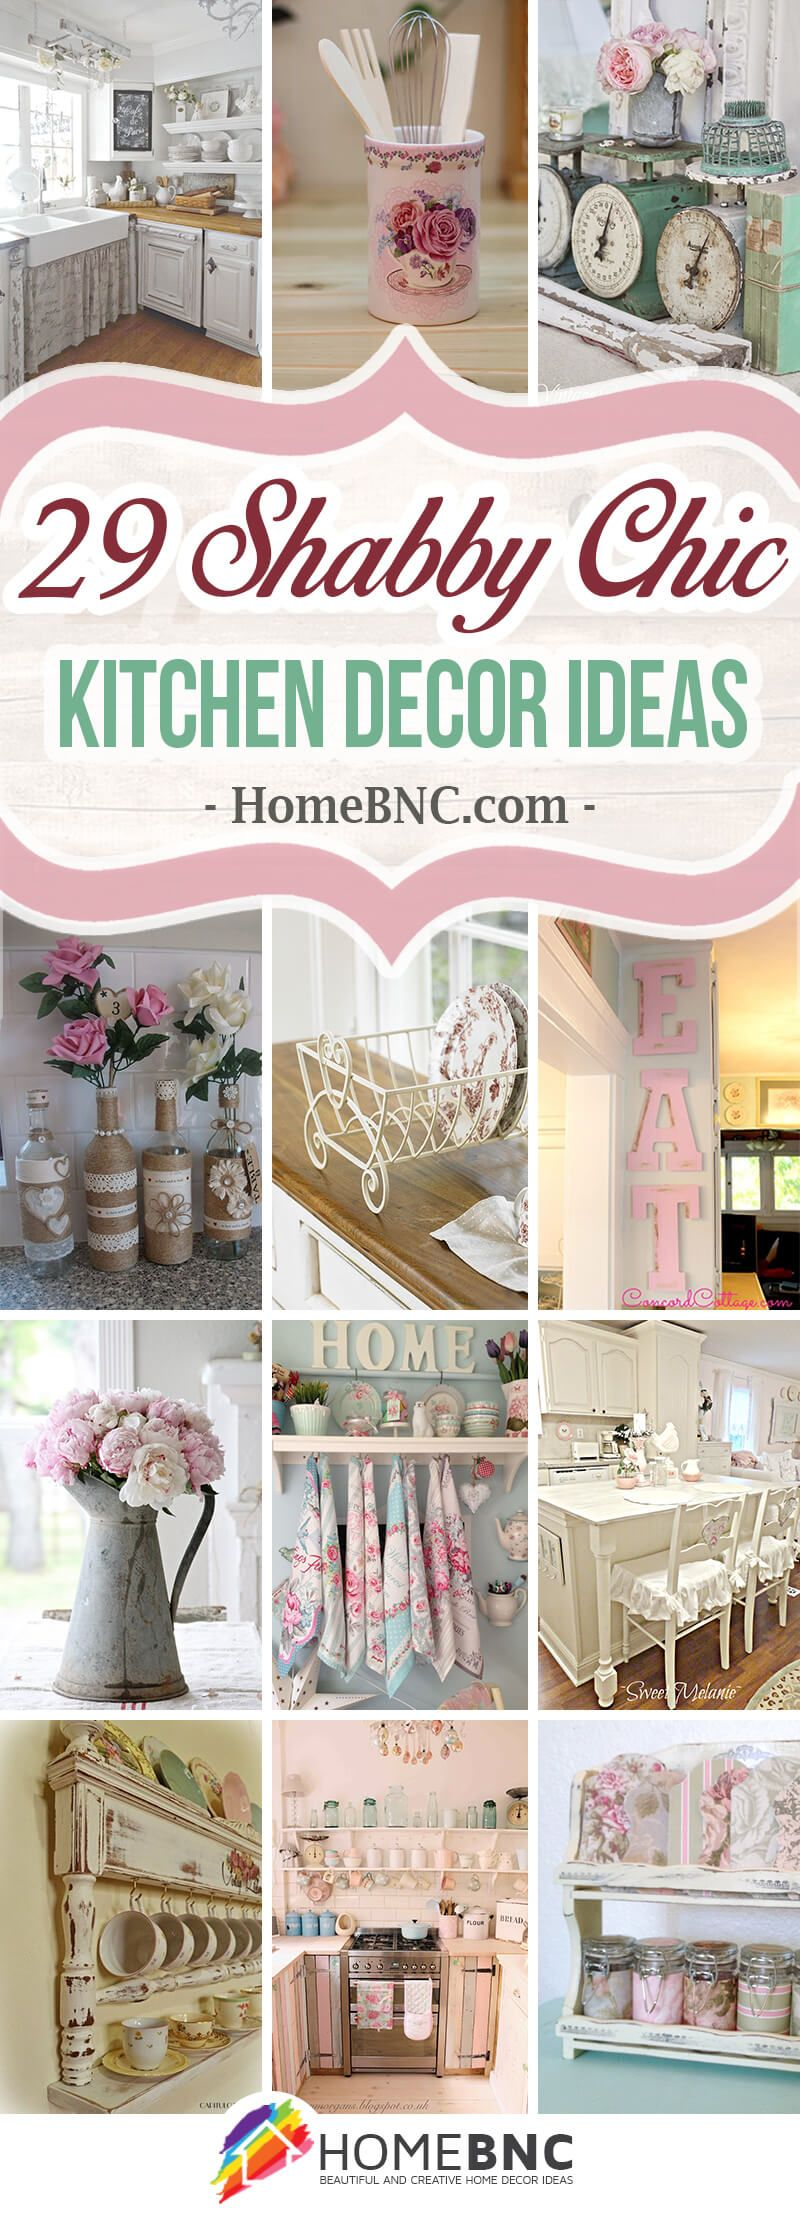 Shabby Chic Küche Deko 29 Gorgeous Shabby Chic Kitchen Decor Ideas That Are Comfy Cozy